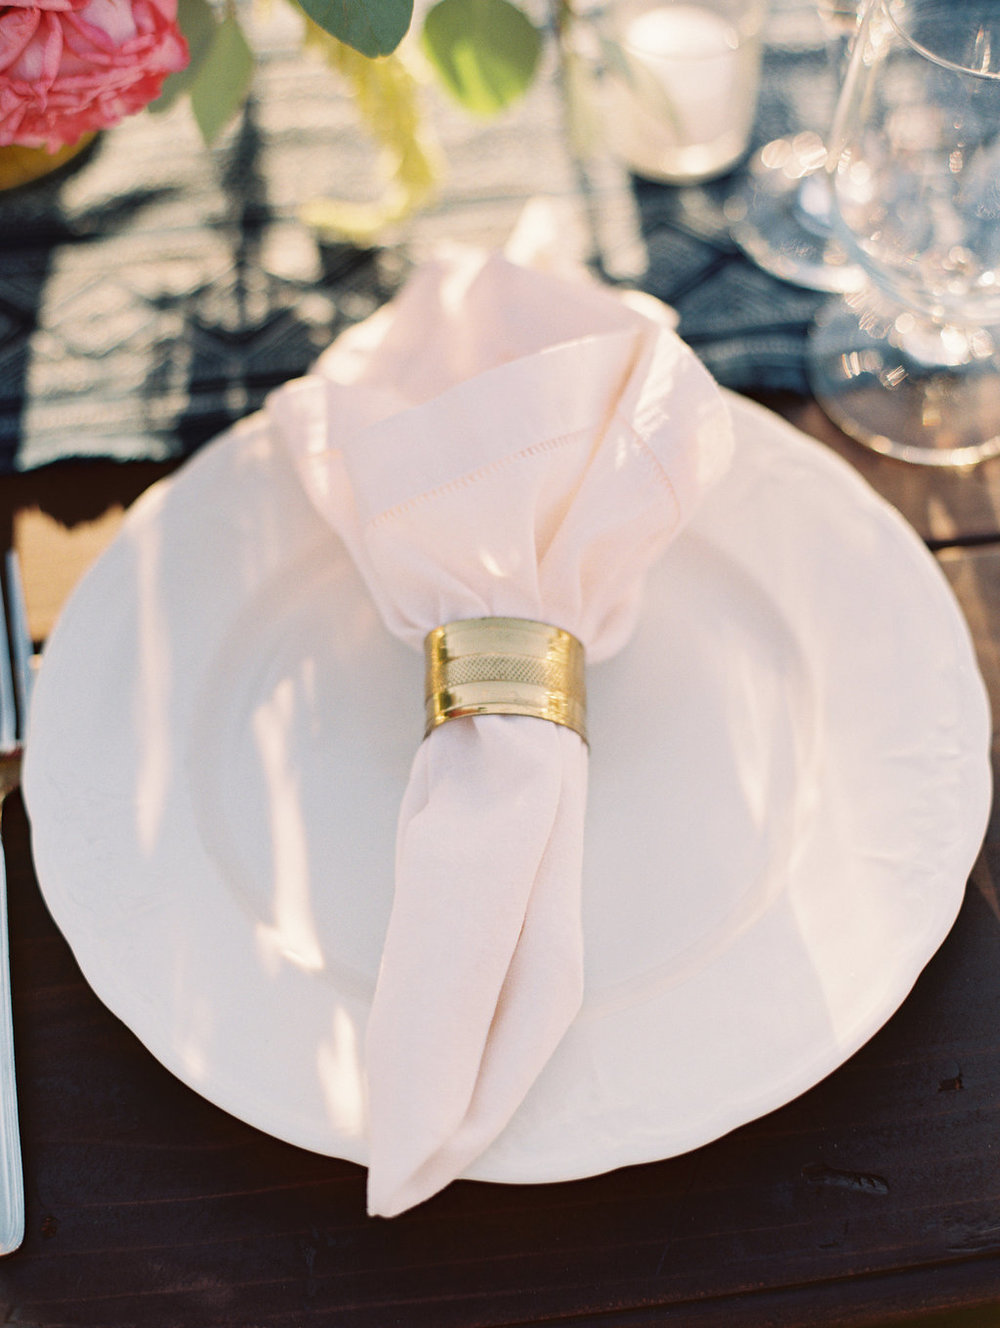 www.santabarbarawedding.com | Lavender and Twine | Sunstone Winery | Place Setting